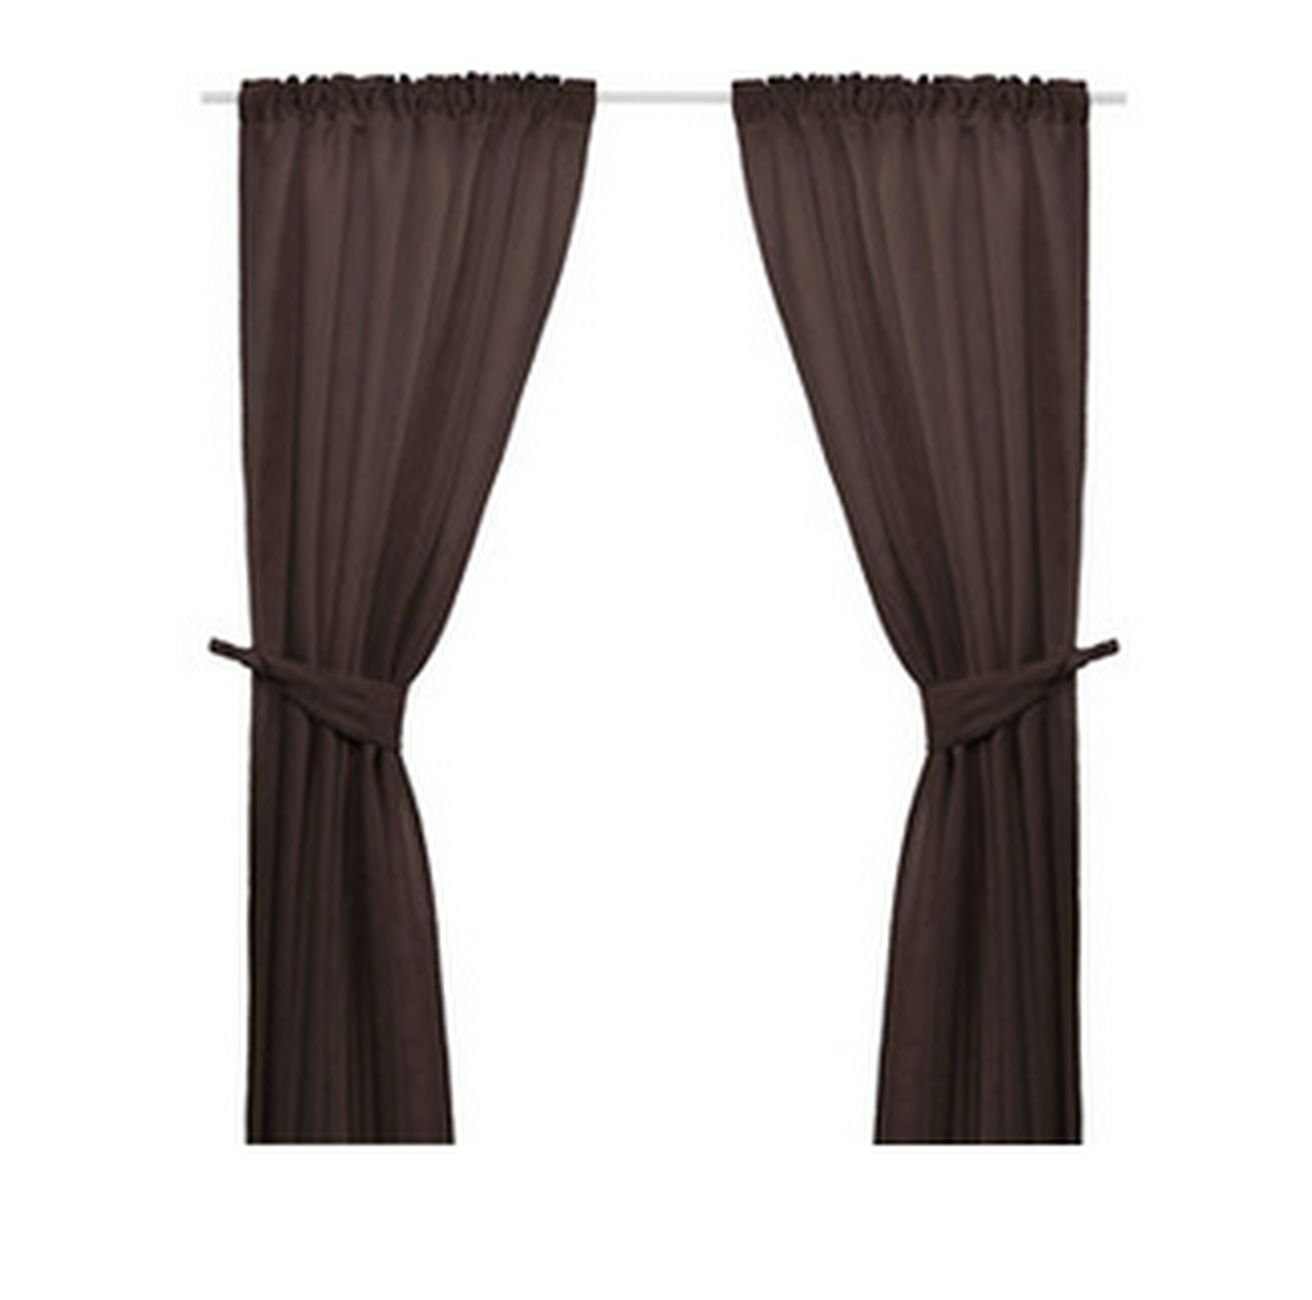 Ikea Anita Brown Curtains With Tie Backs 98 Quot Jacqiard